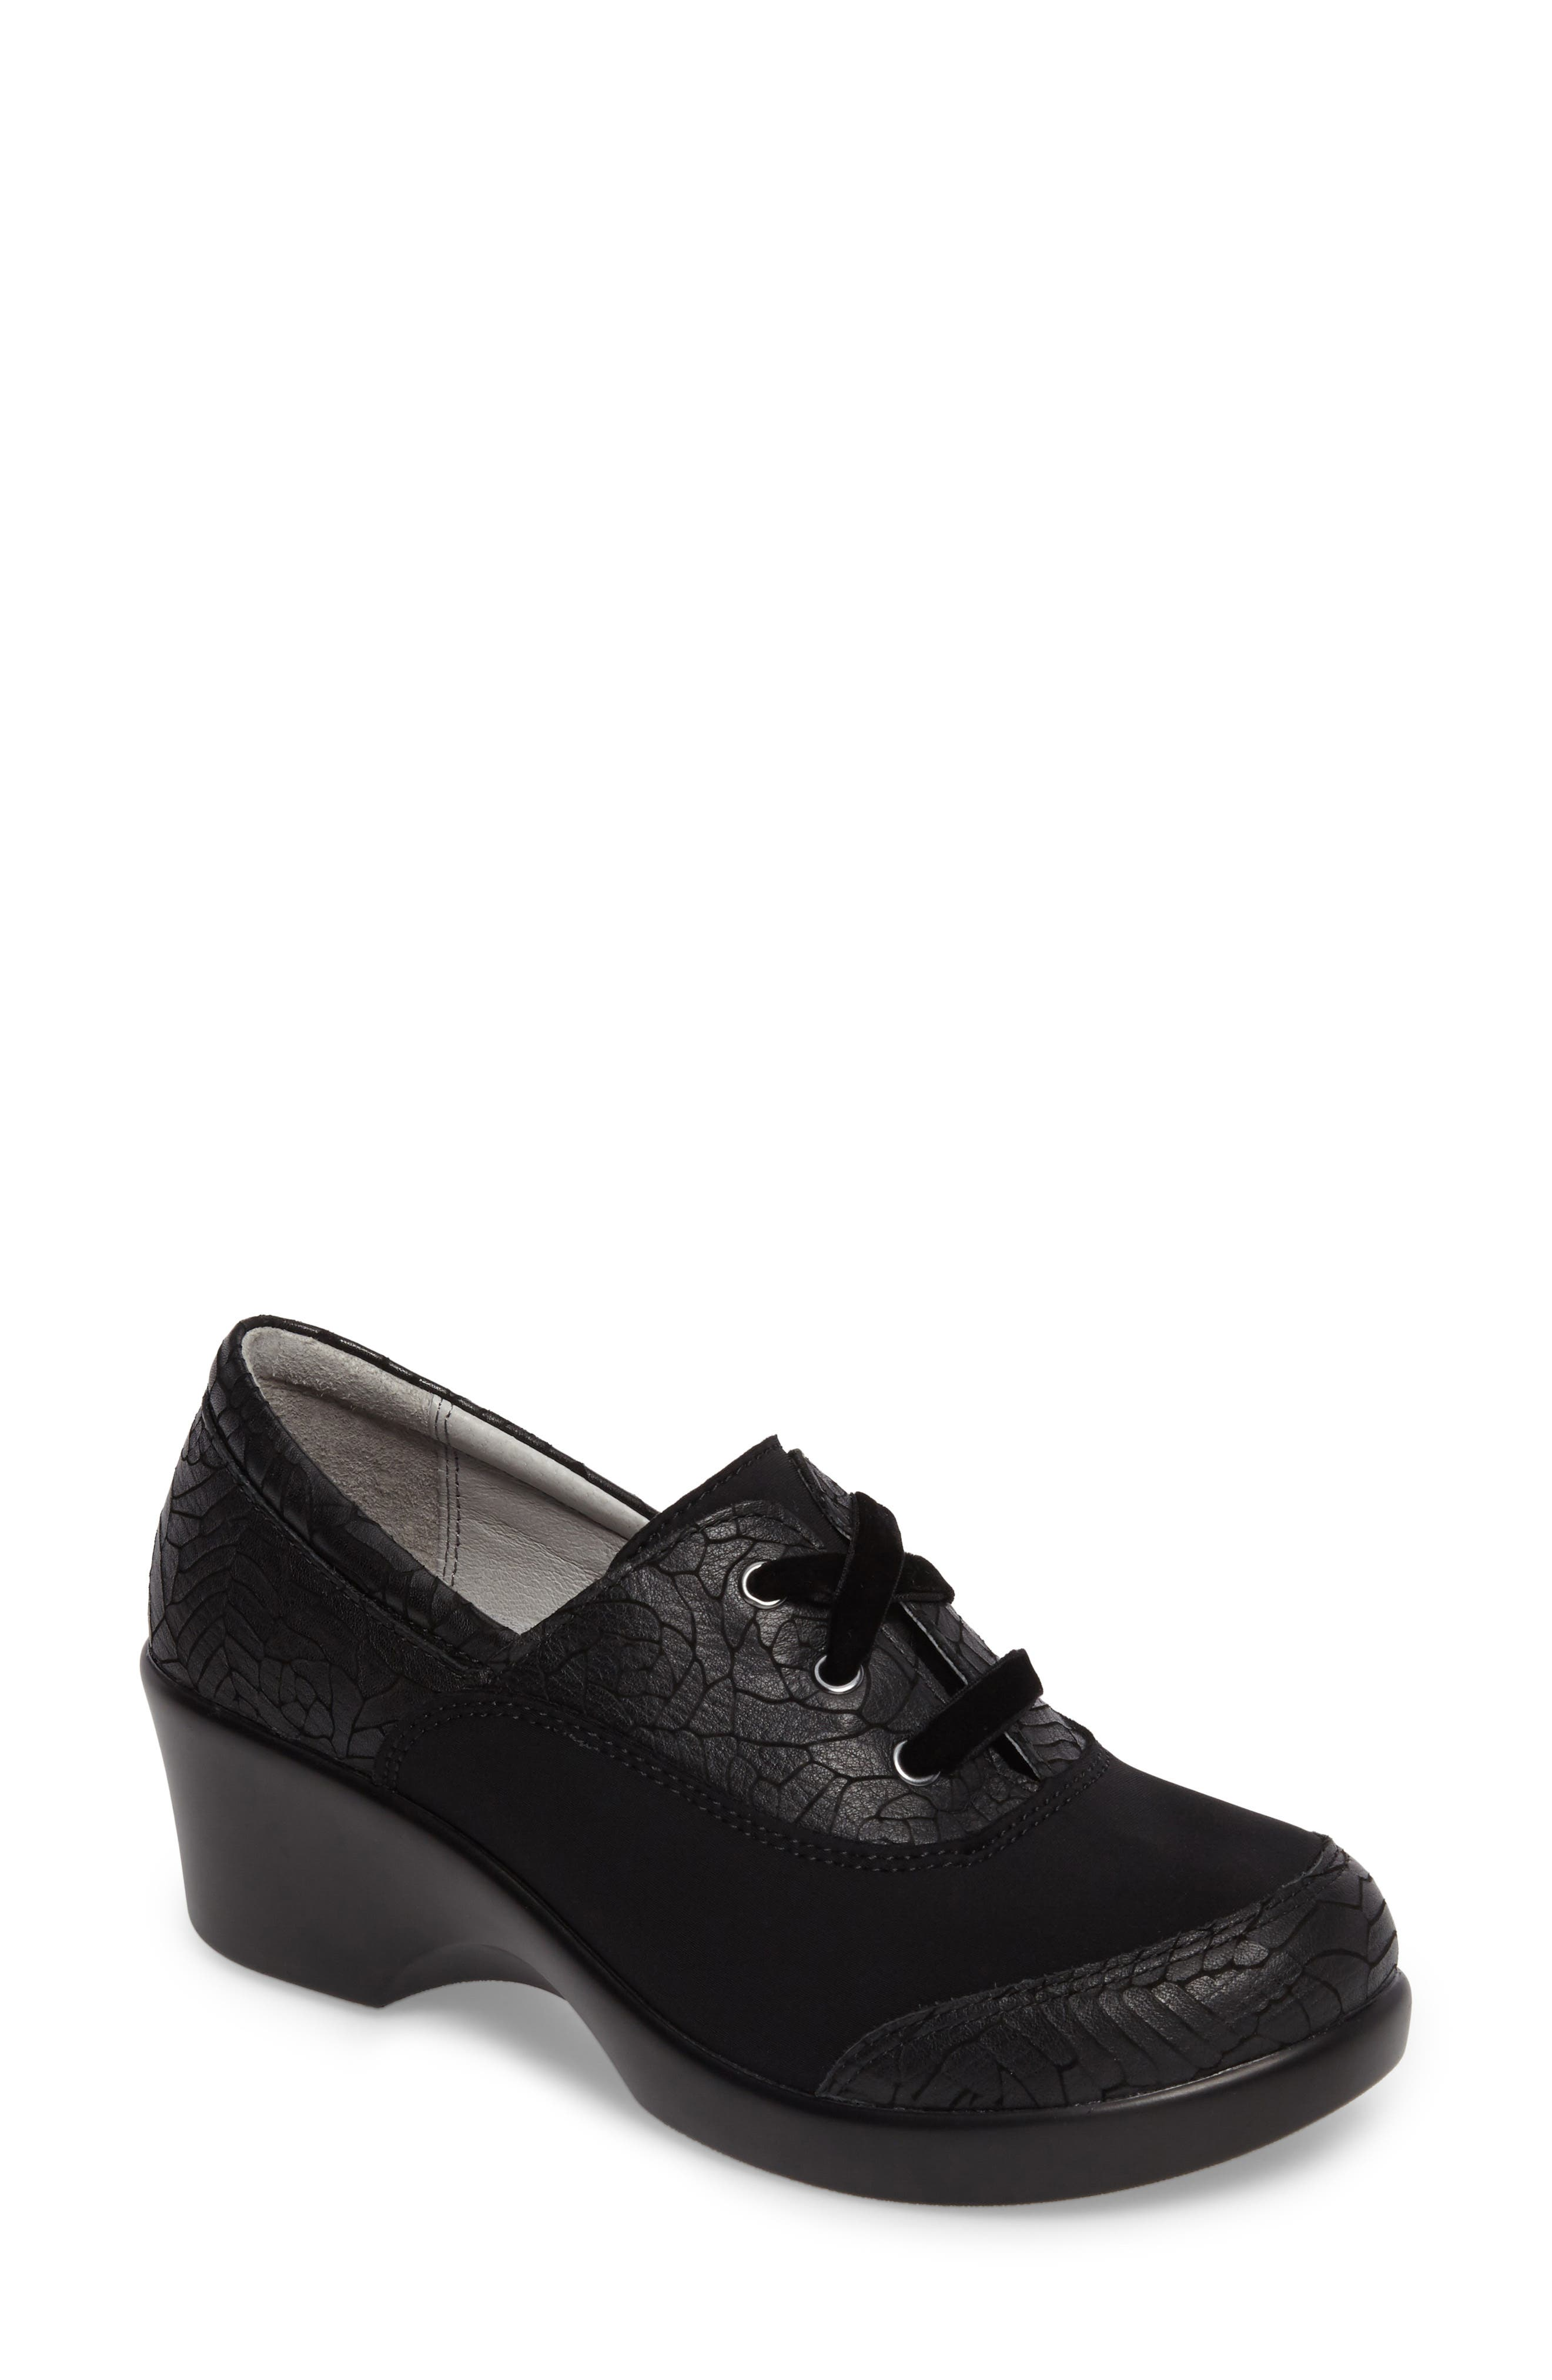 Madi Lace-Up Shoe,                             Main thumbnail 1, color,                             Floral Notes Leather